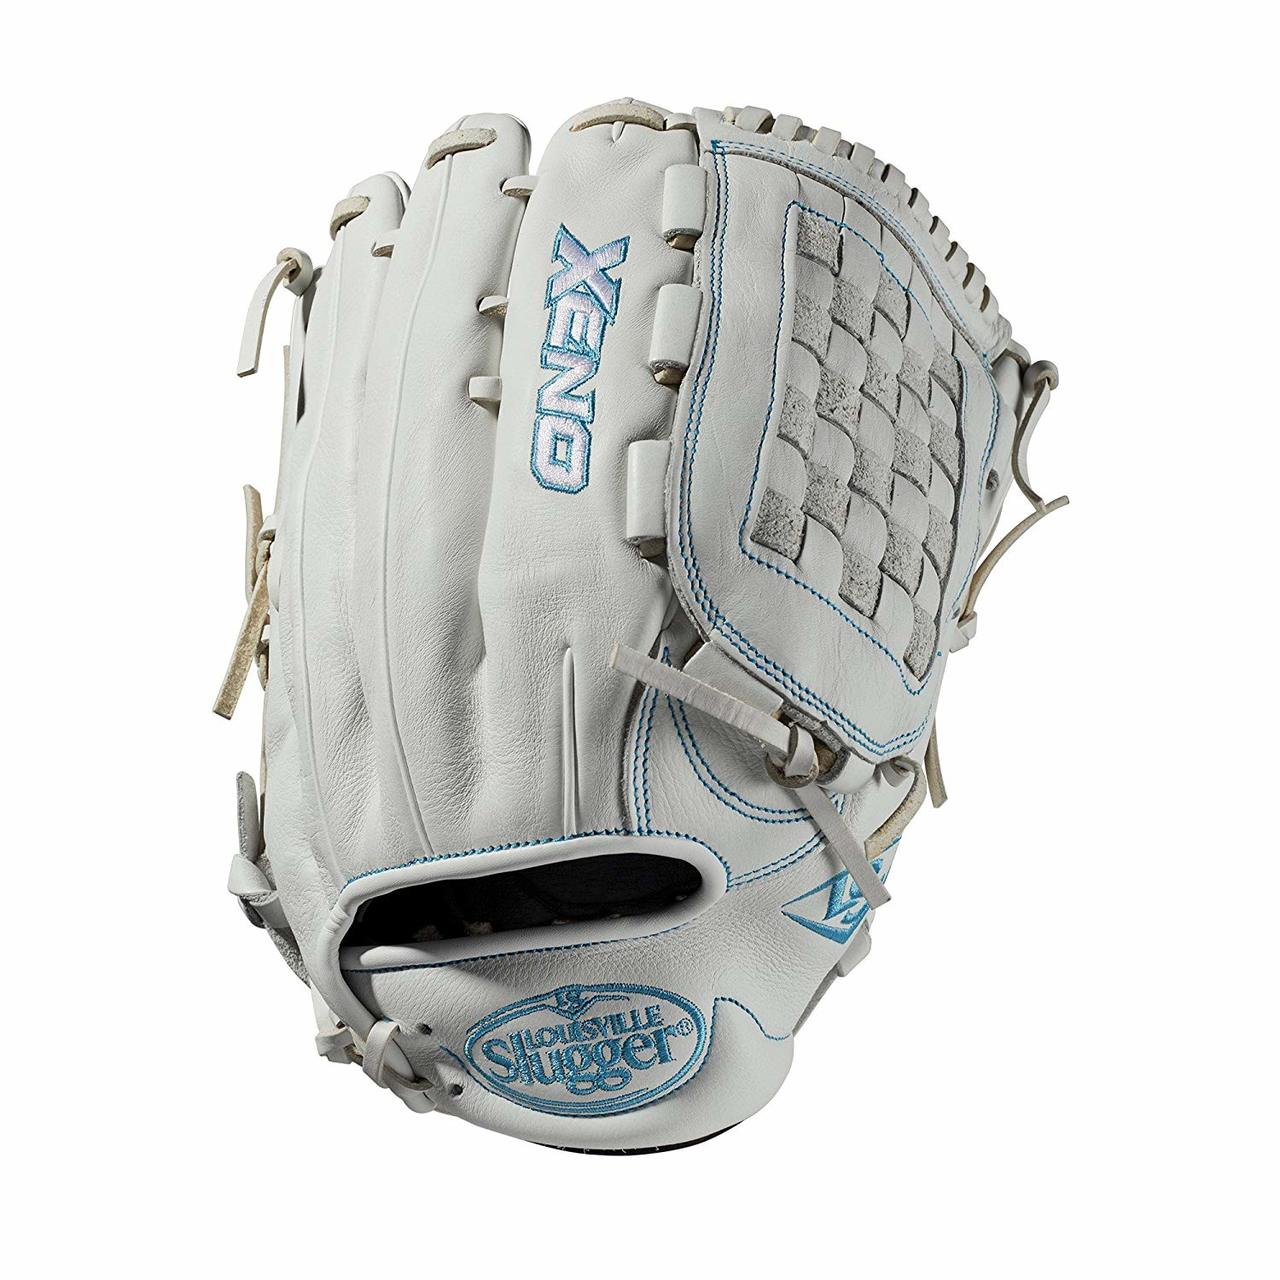 louisville-slugger-2019-xeno-fastpitch-softball-glove-12-75-right-hand-throw WTLXNRF191275-RightHandThrow  887768711375 12.75 outfield glove Closed weave web Memory foam wrist lining White